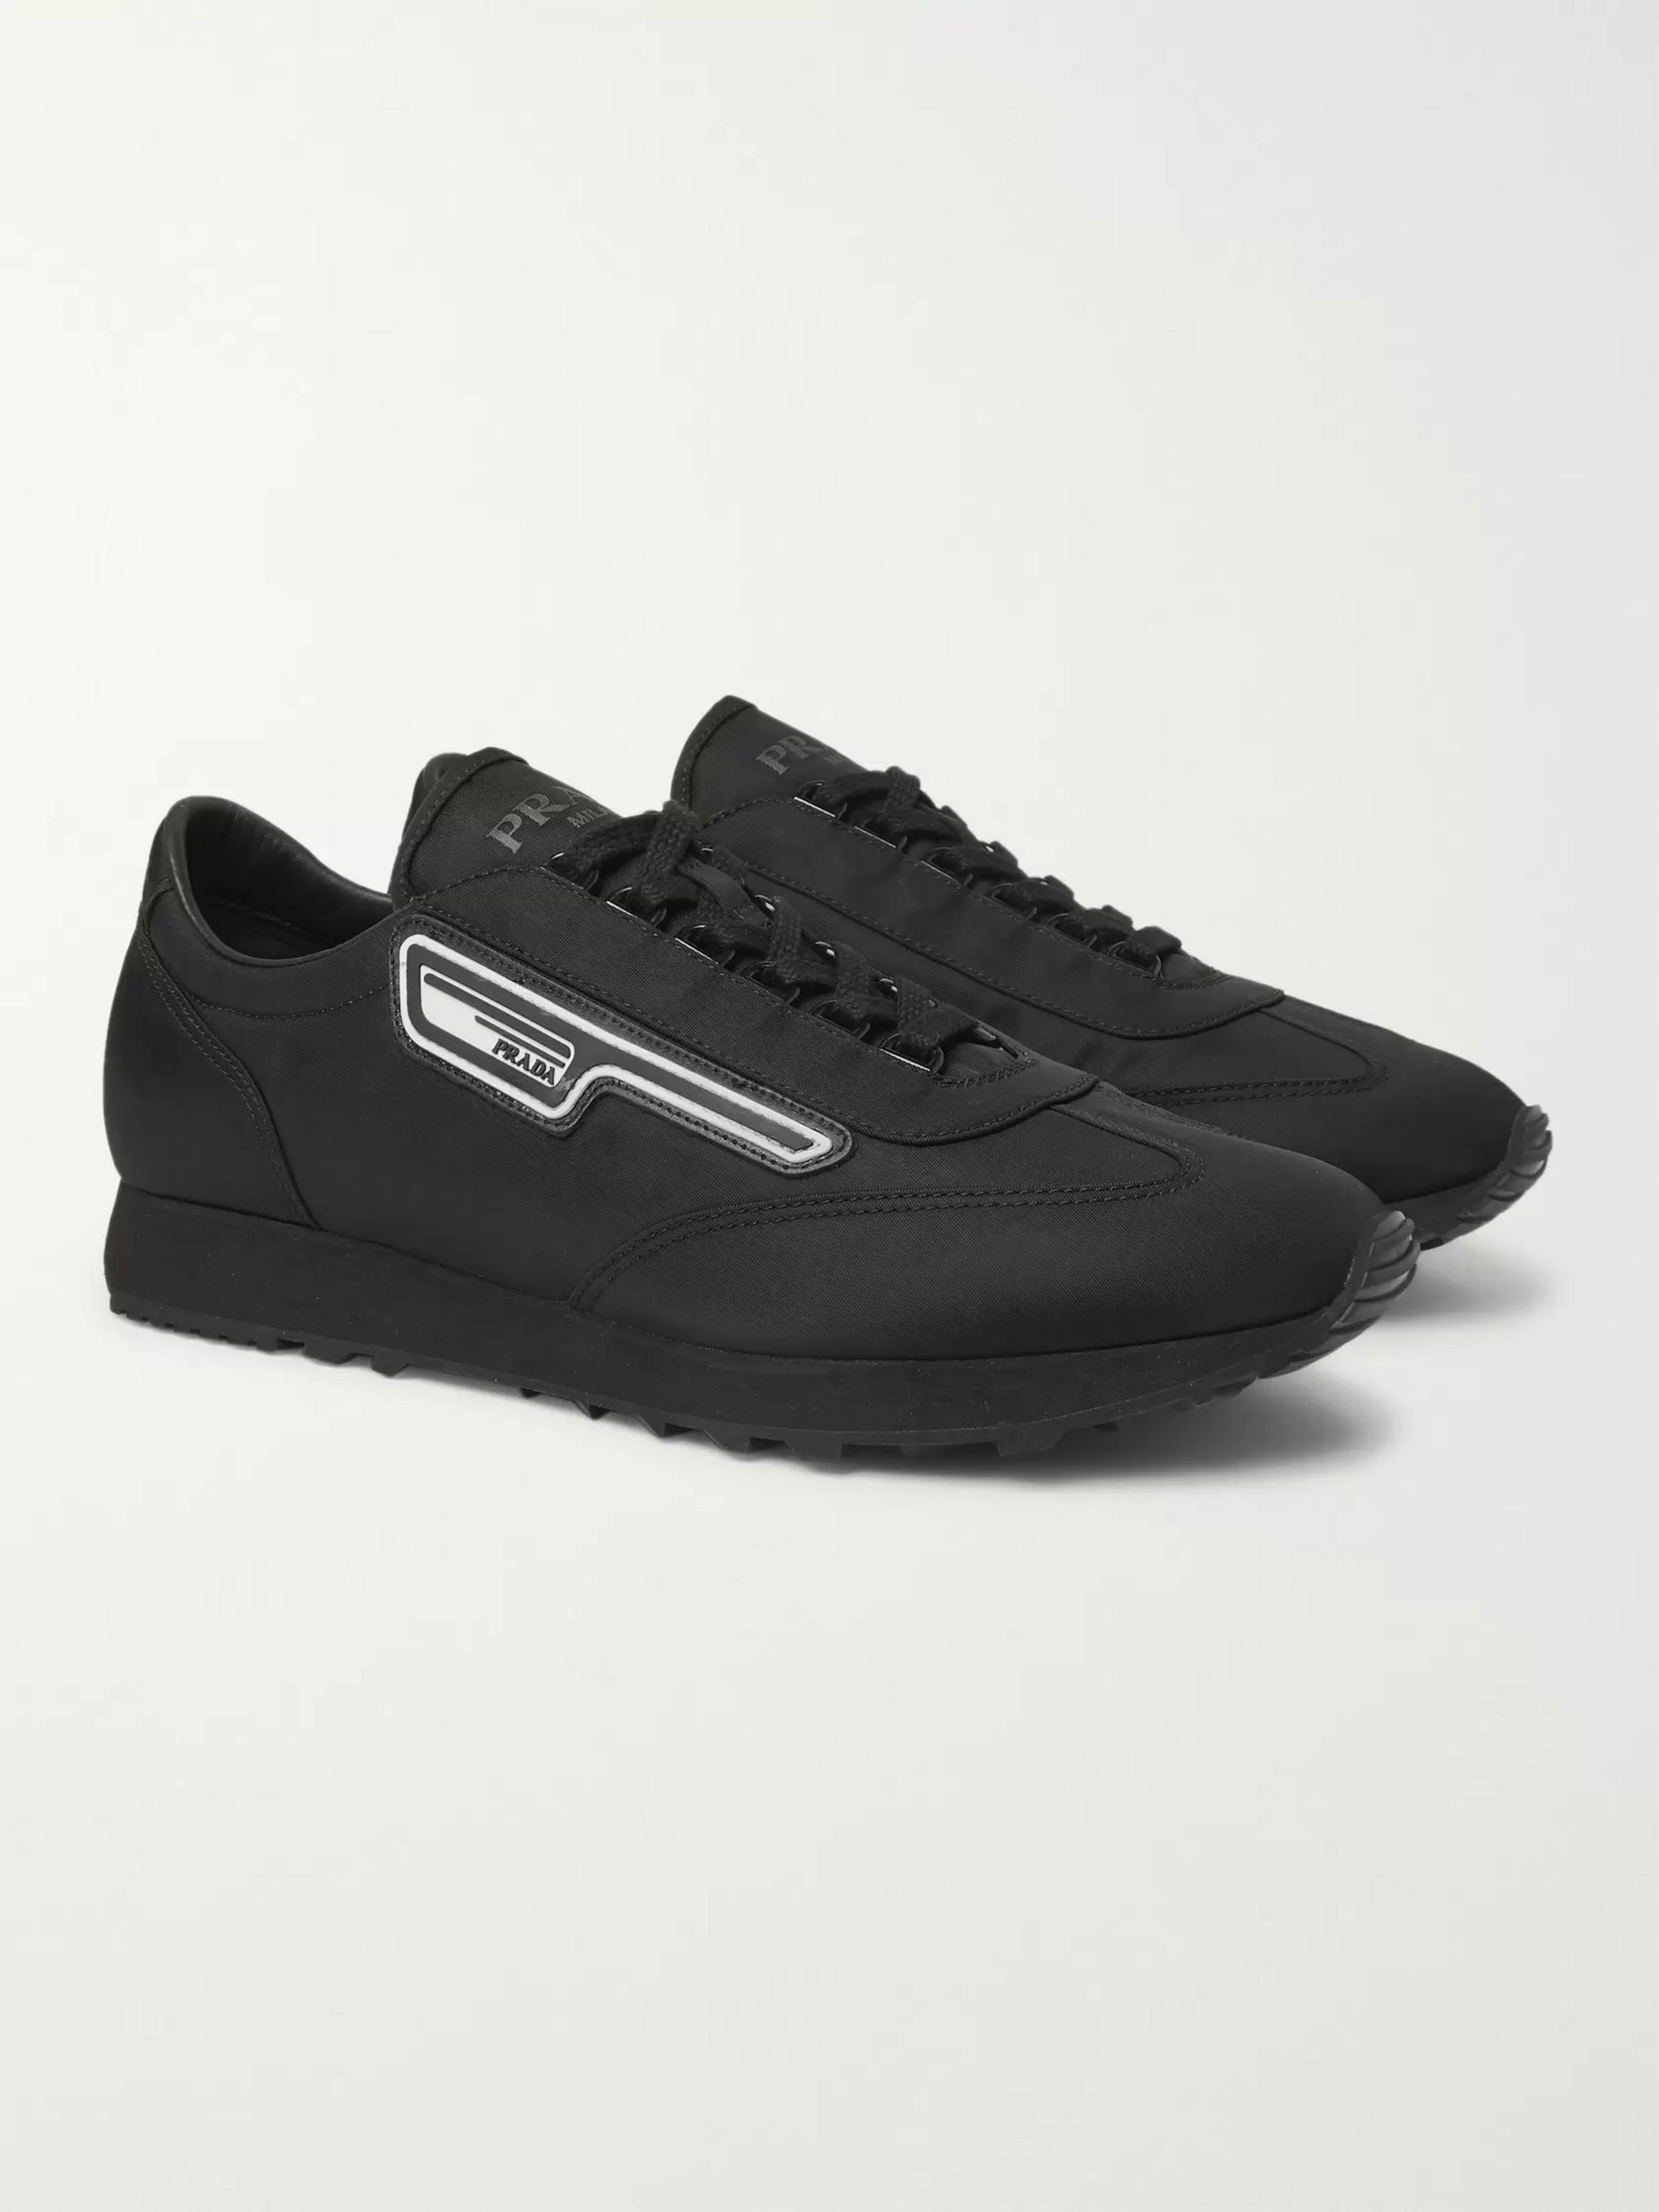 Milano 70 Rubber Trimmed Nylon Sneakers by Prada